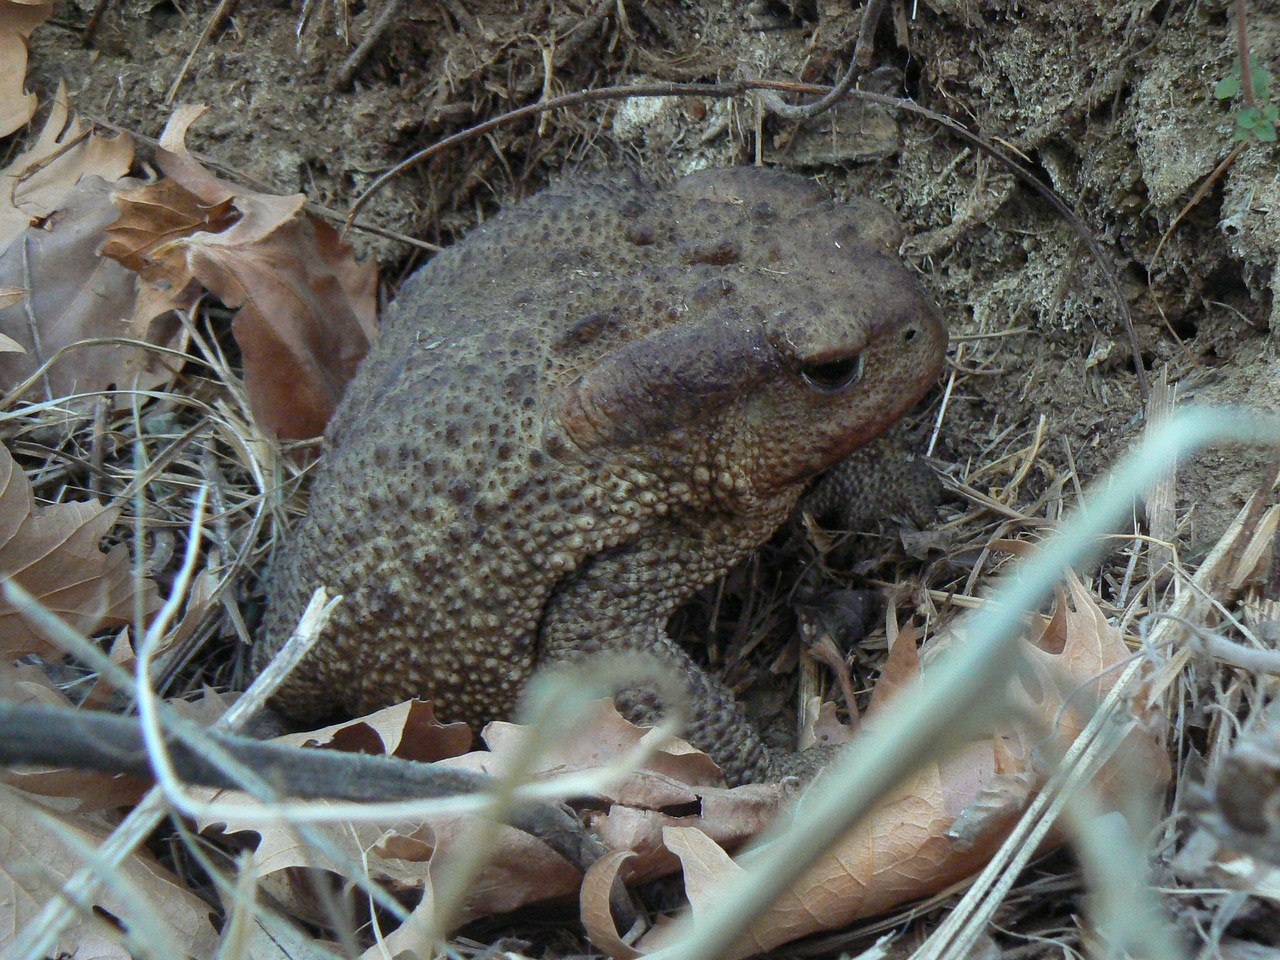 Common Toad Bufo bufo, Greece